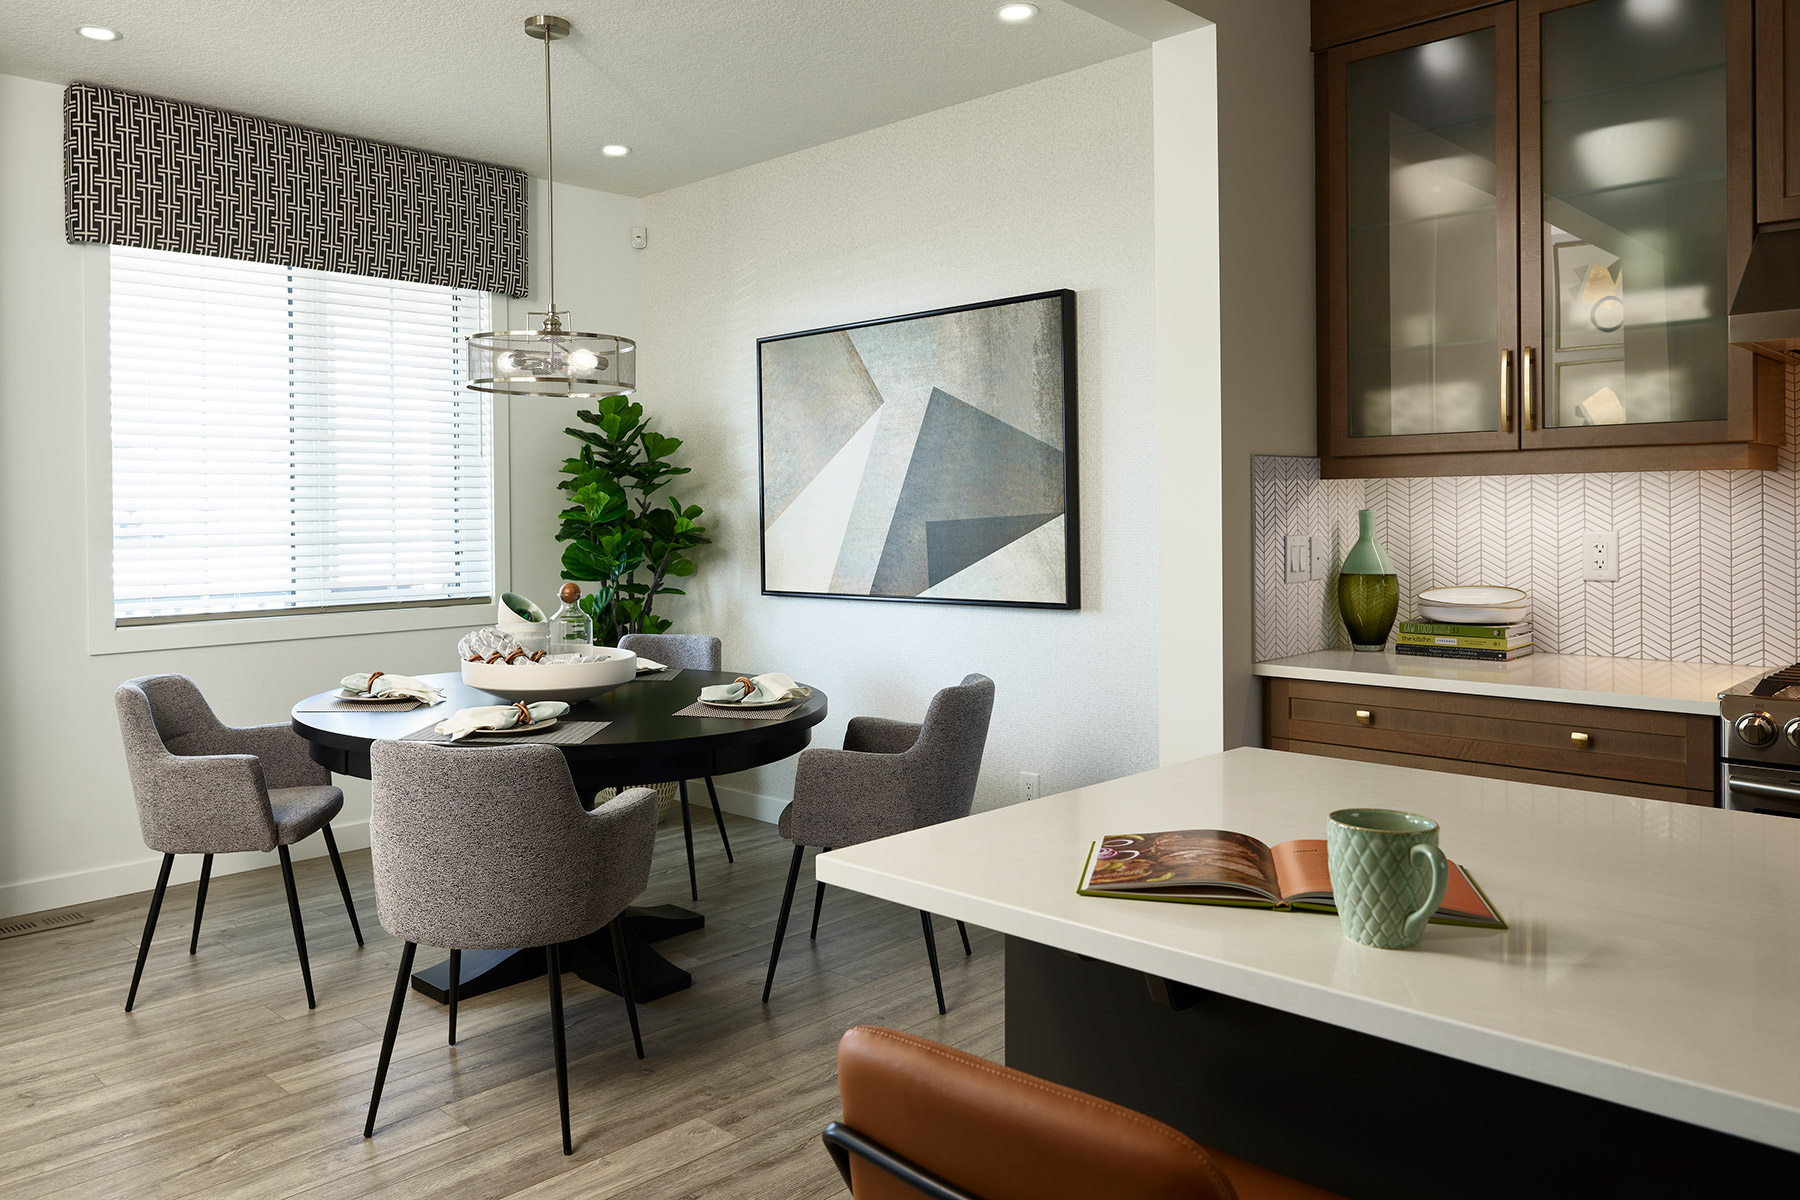 Palliser Plan Breakfast at Carrington in Calgary Alberta by Mattamy Homes